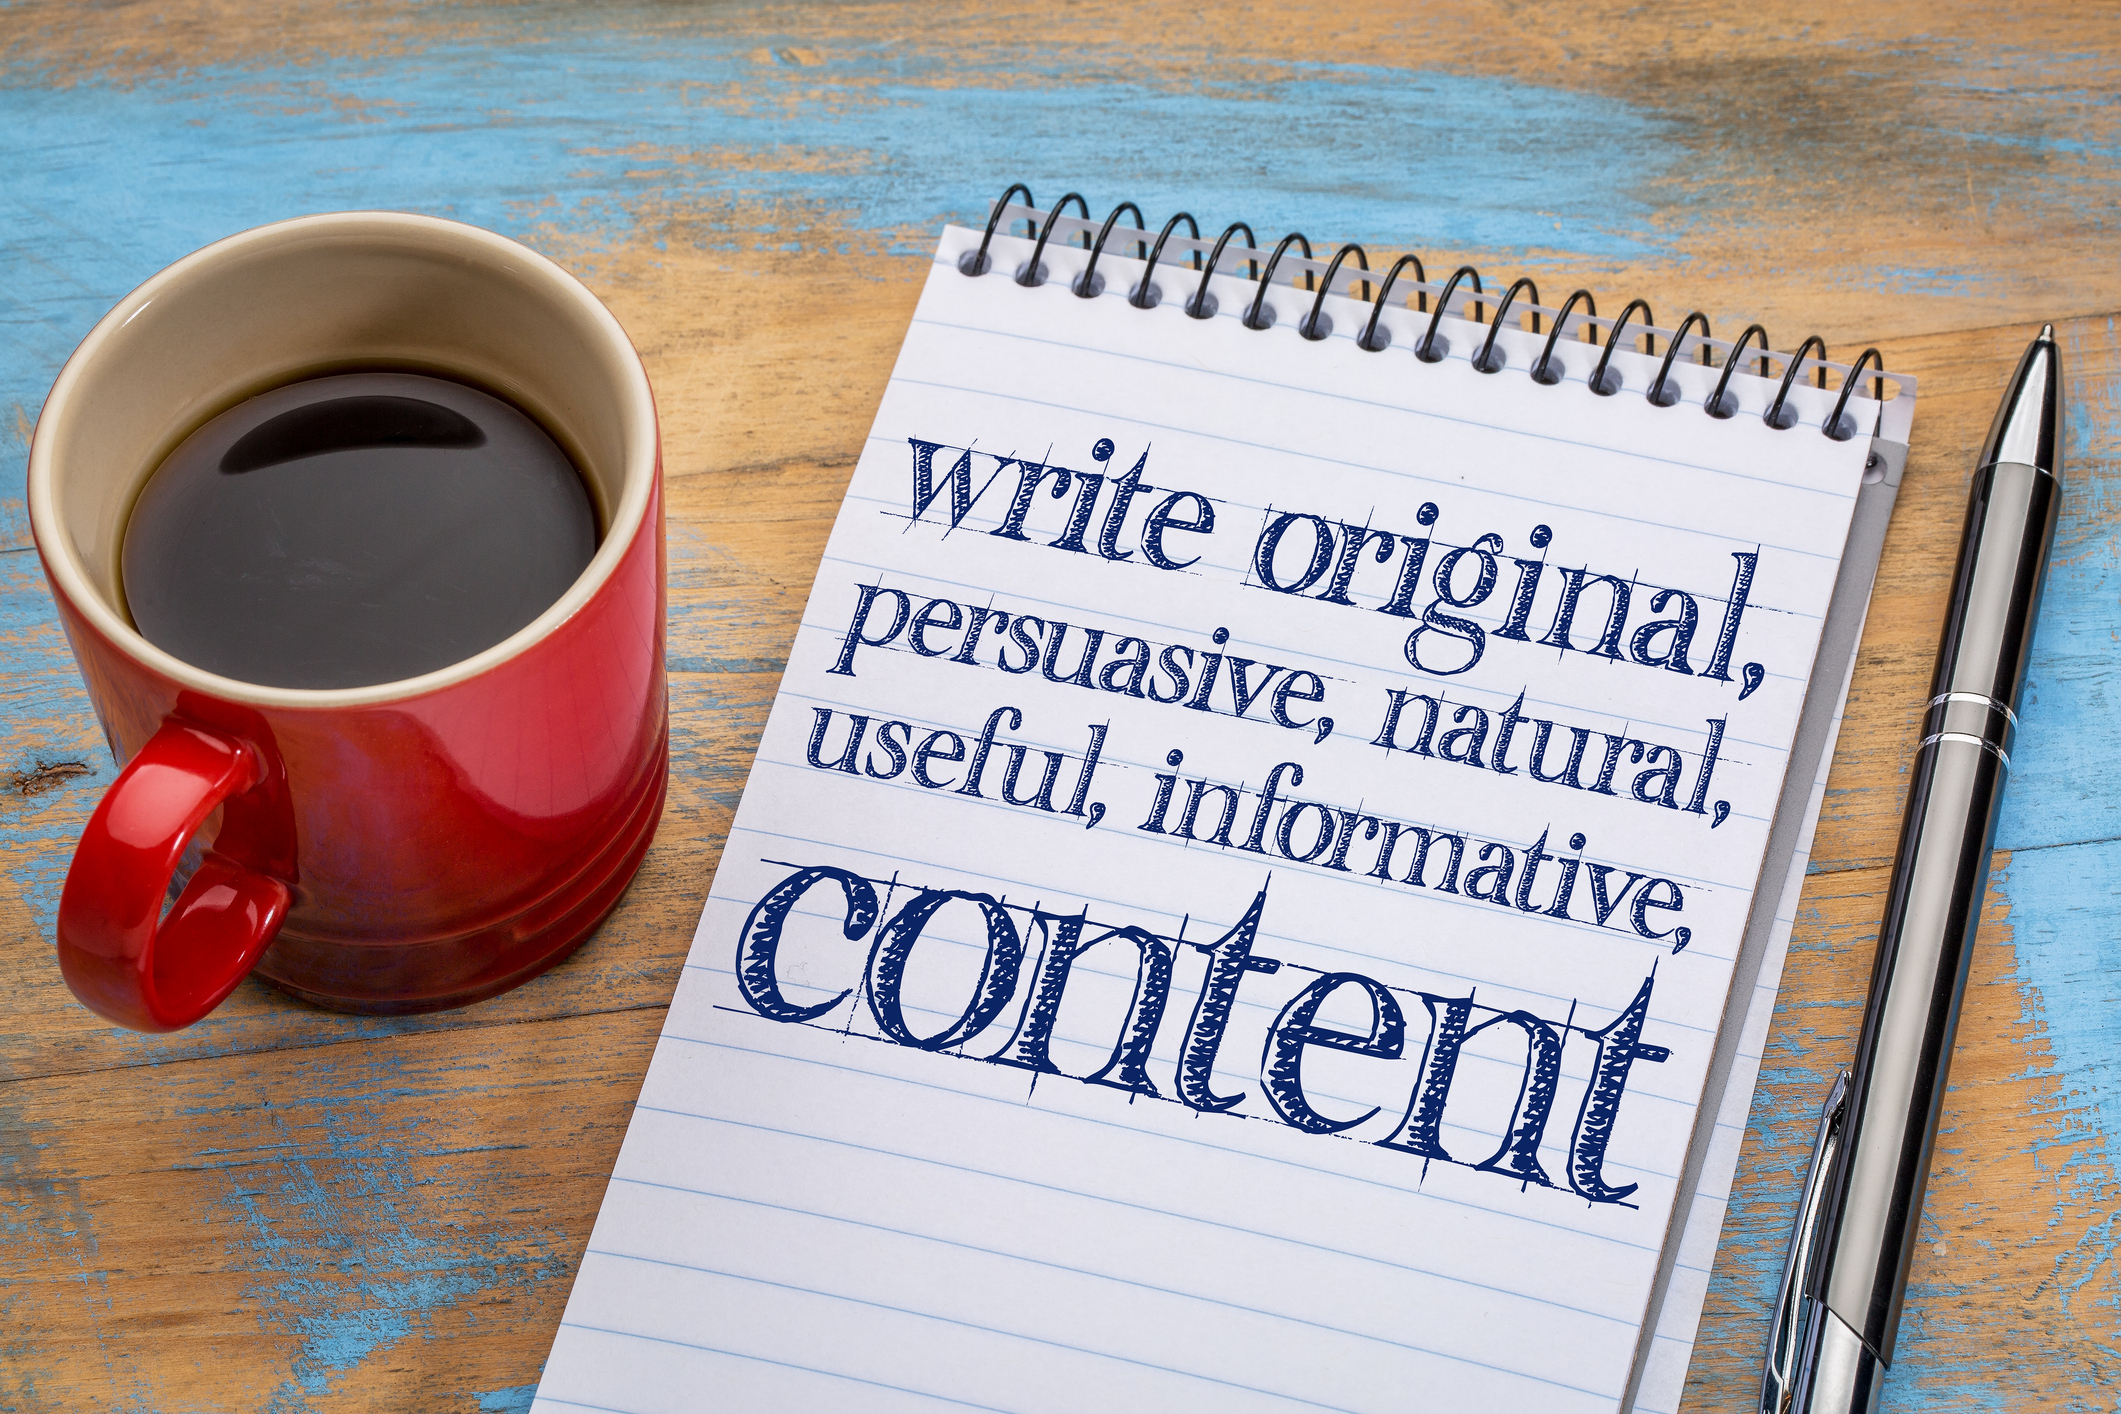 Content Management Competence - Relevant, researched content for your business...